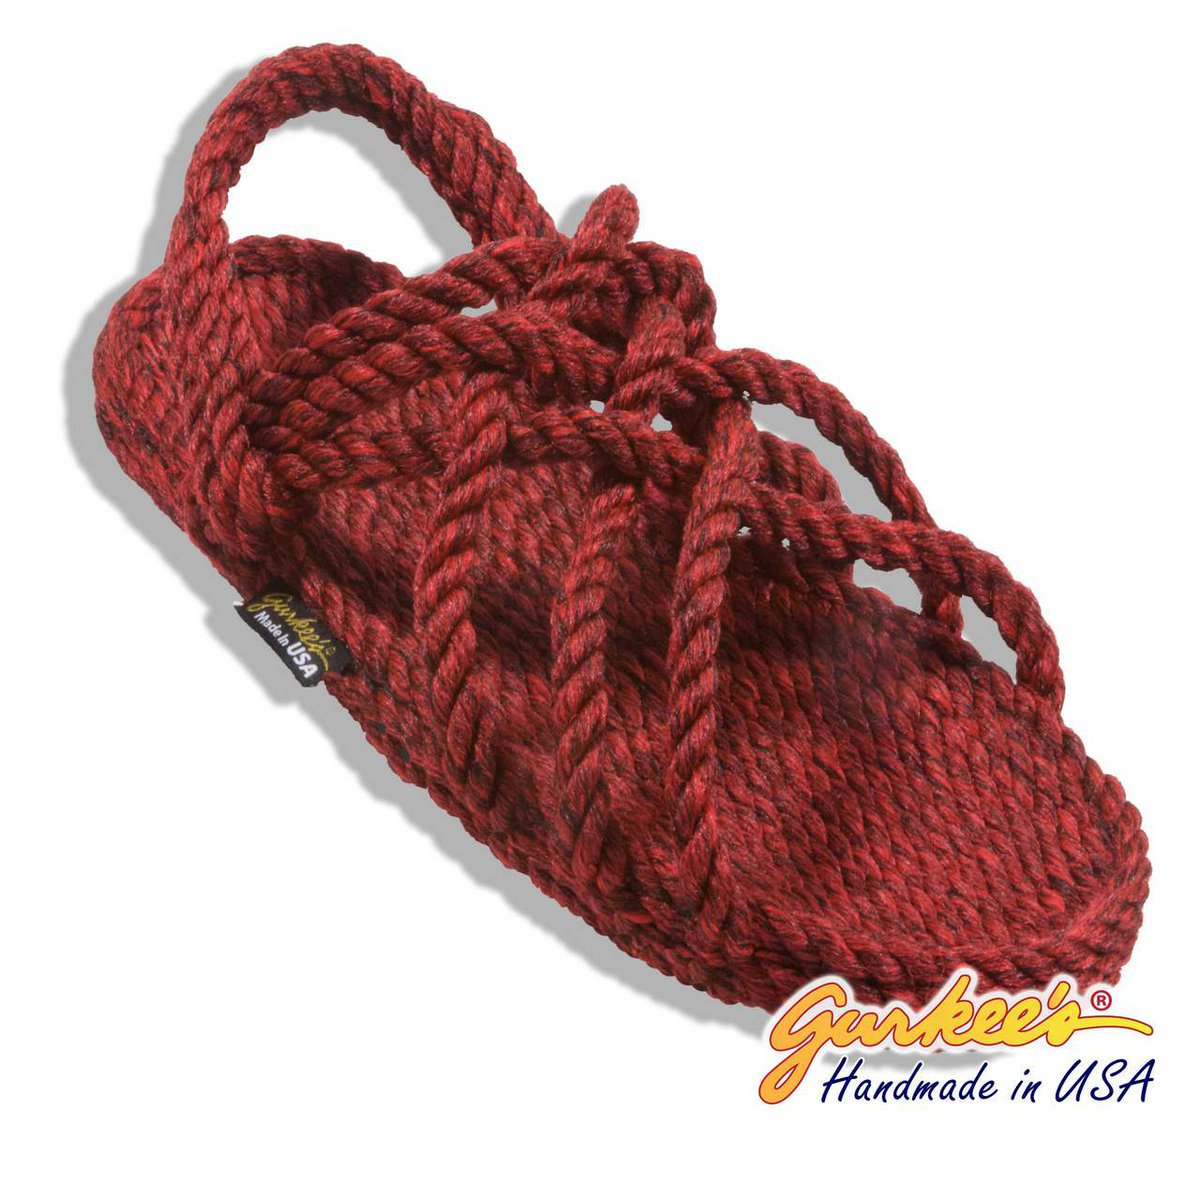 37e815778 Gurkee s Sandals ( Gurkees)